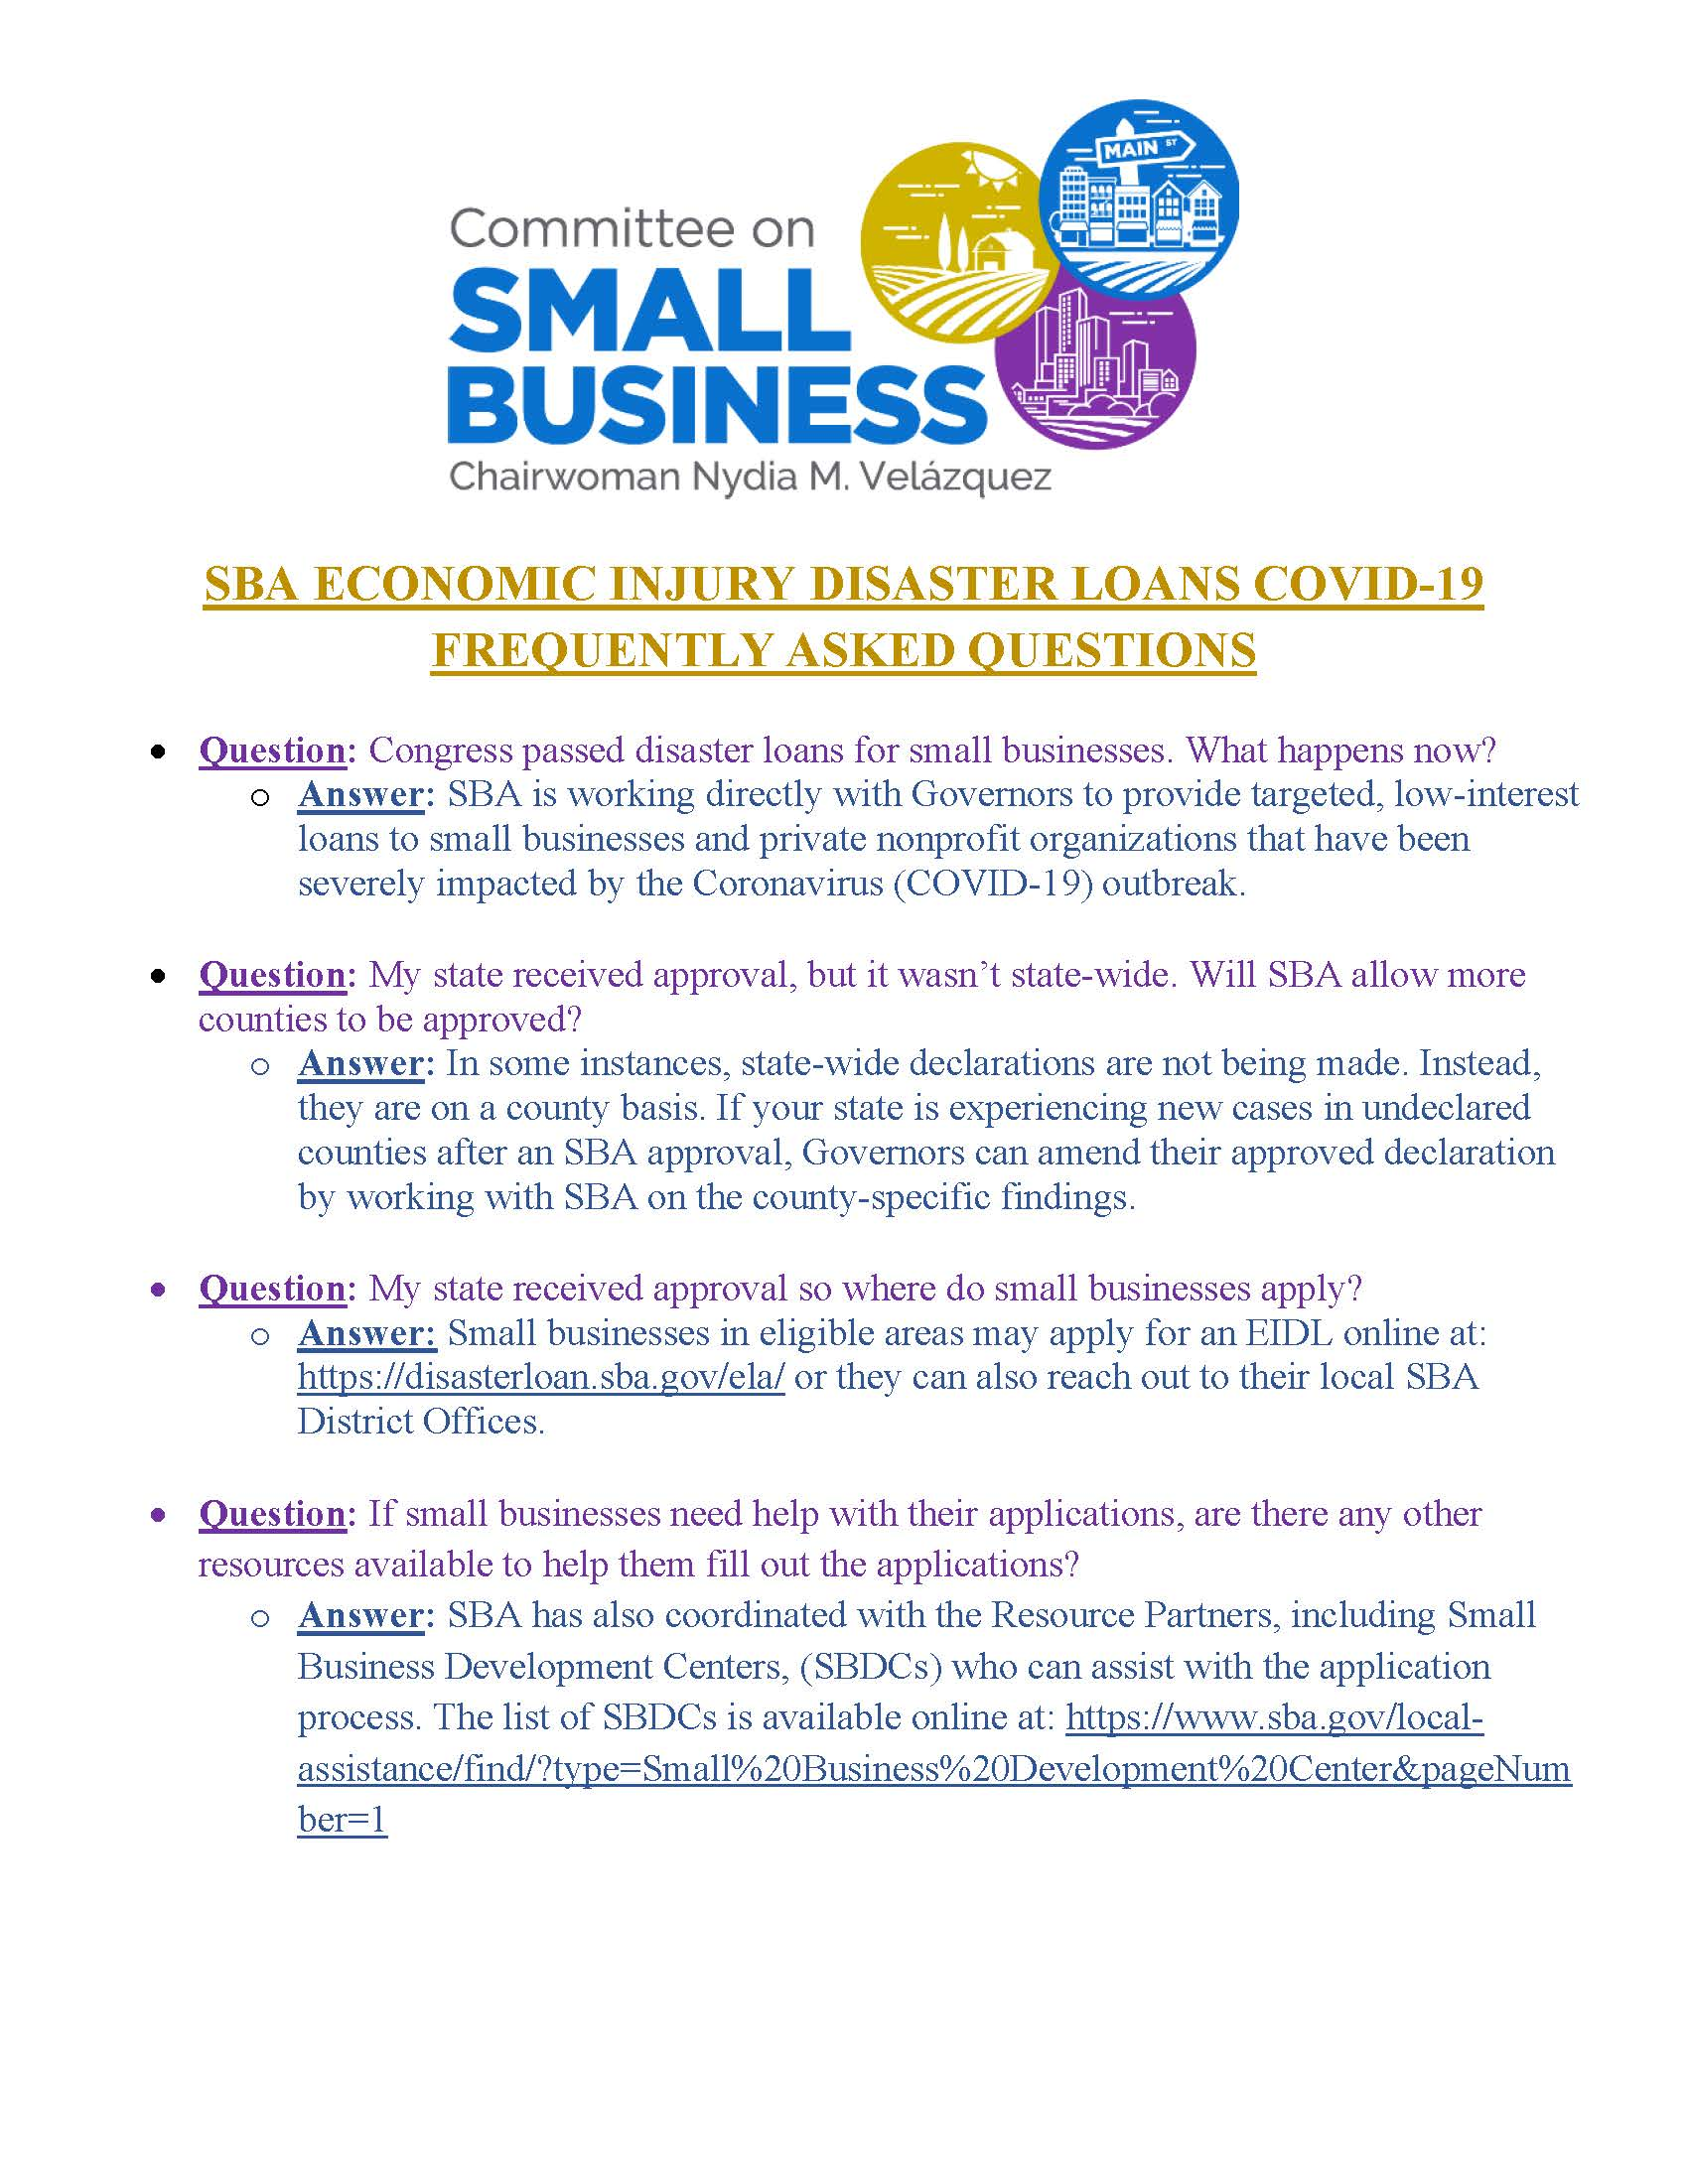 Small Business Administration Economic Injury Disaster Loans COVID FAQs (FINAL)_Page_1